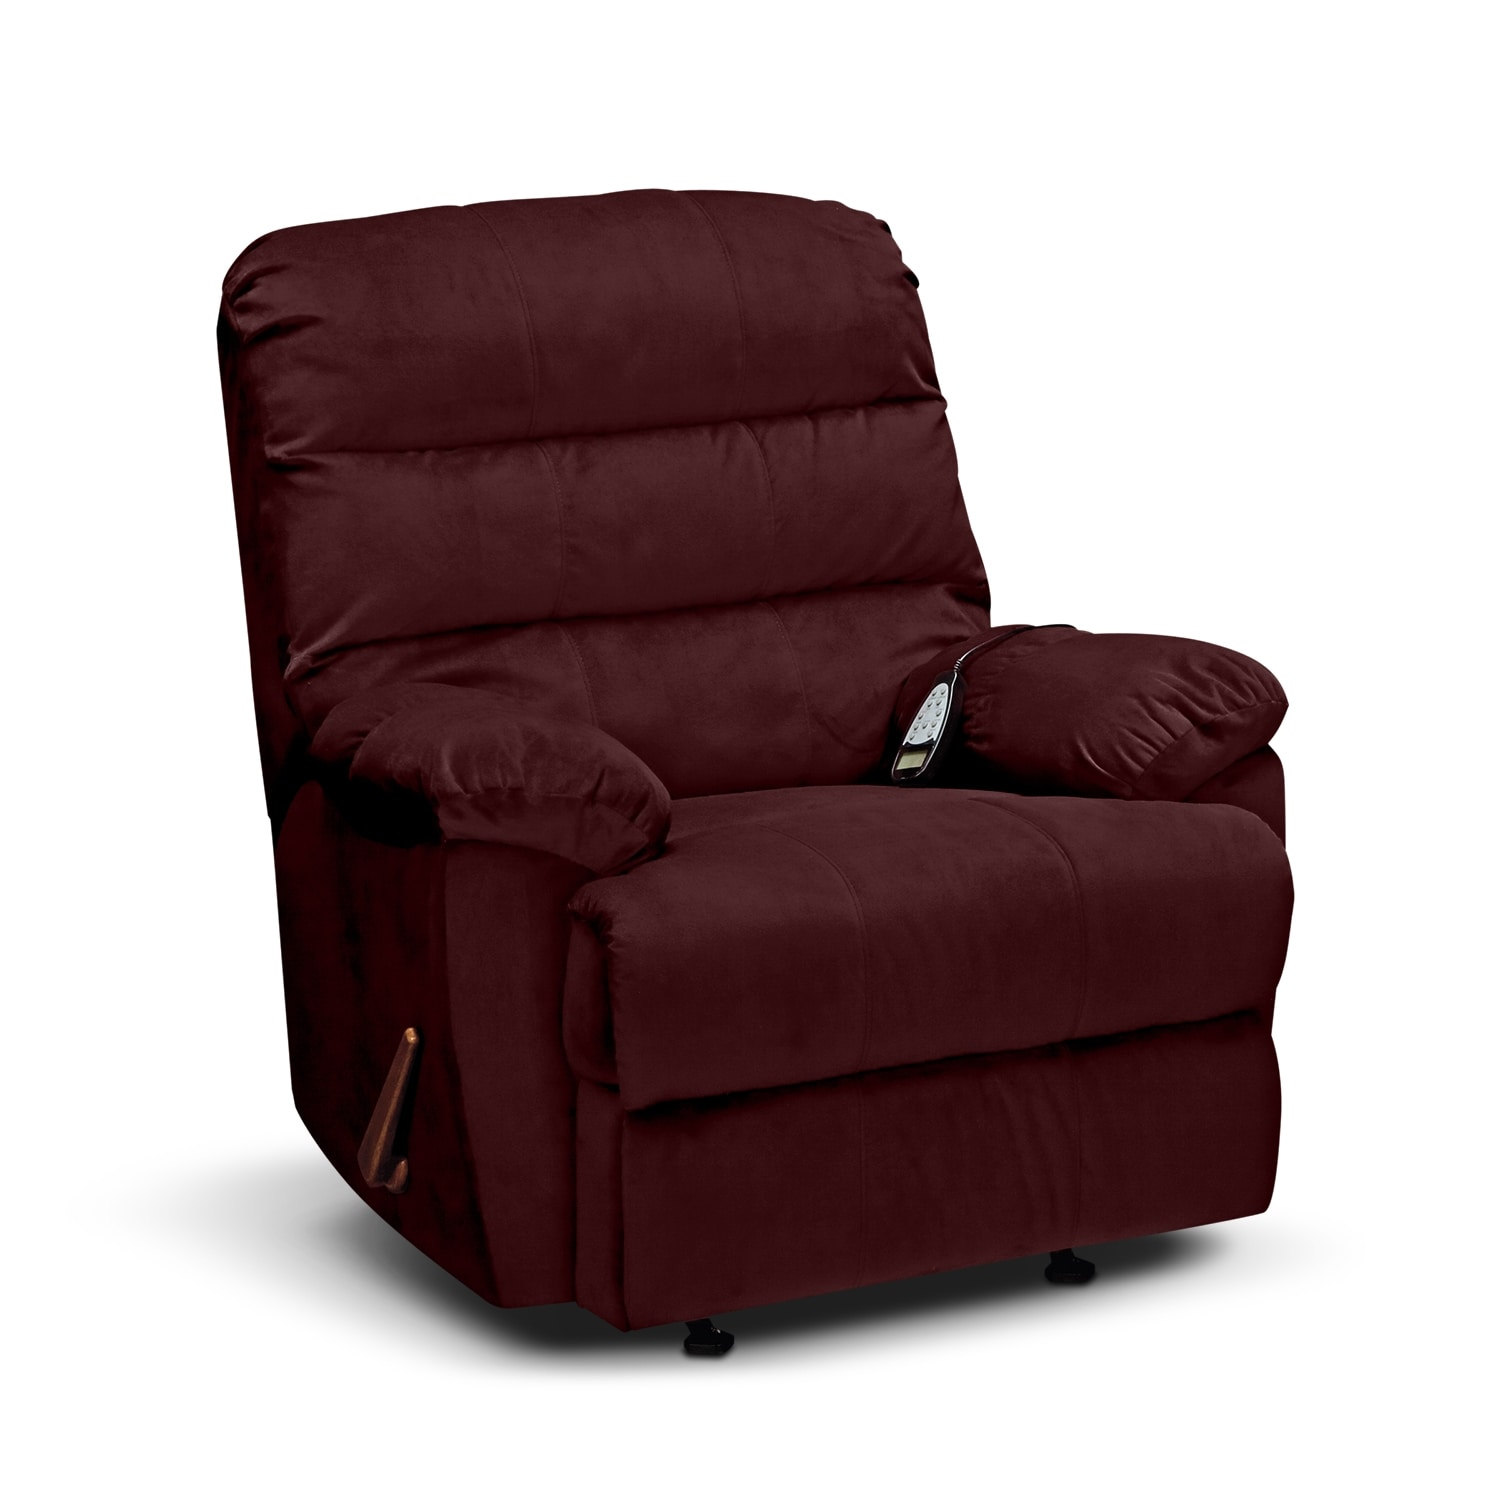 Atlantic Massage Rocker Recliner